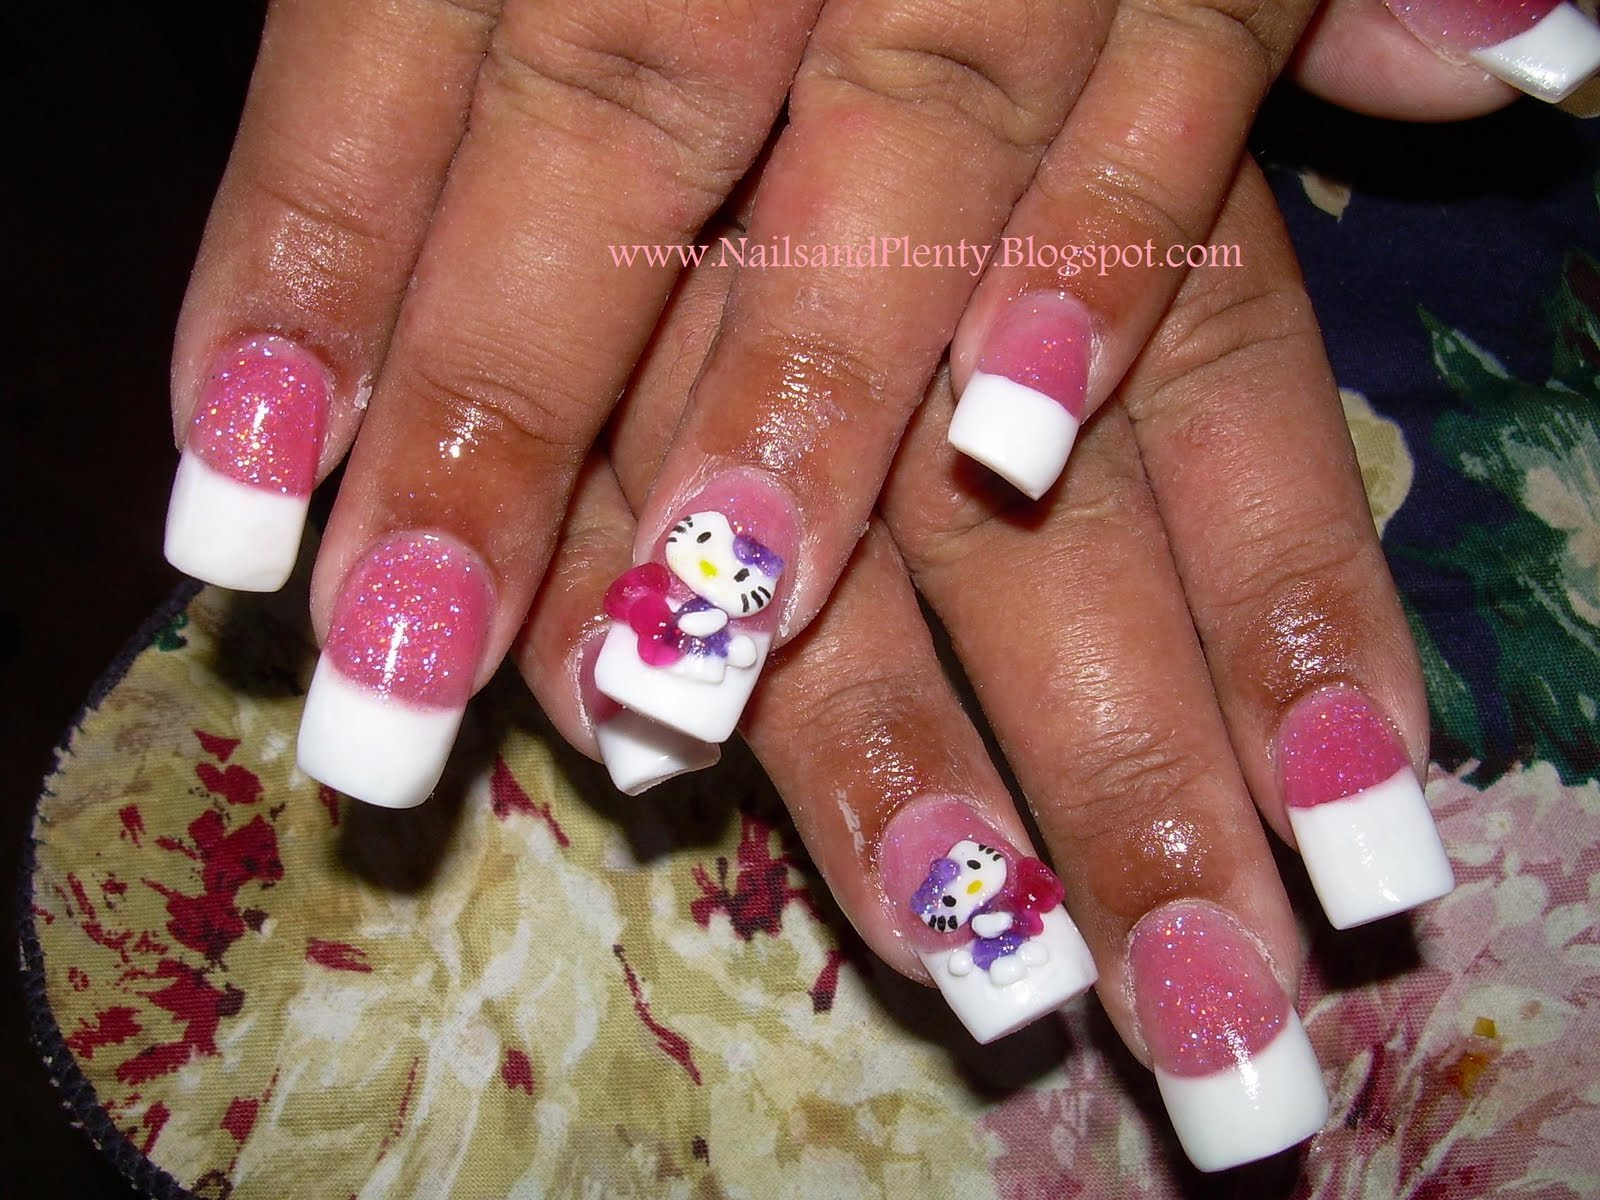 The Charming Acrylic nails designs Photo